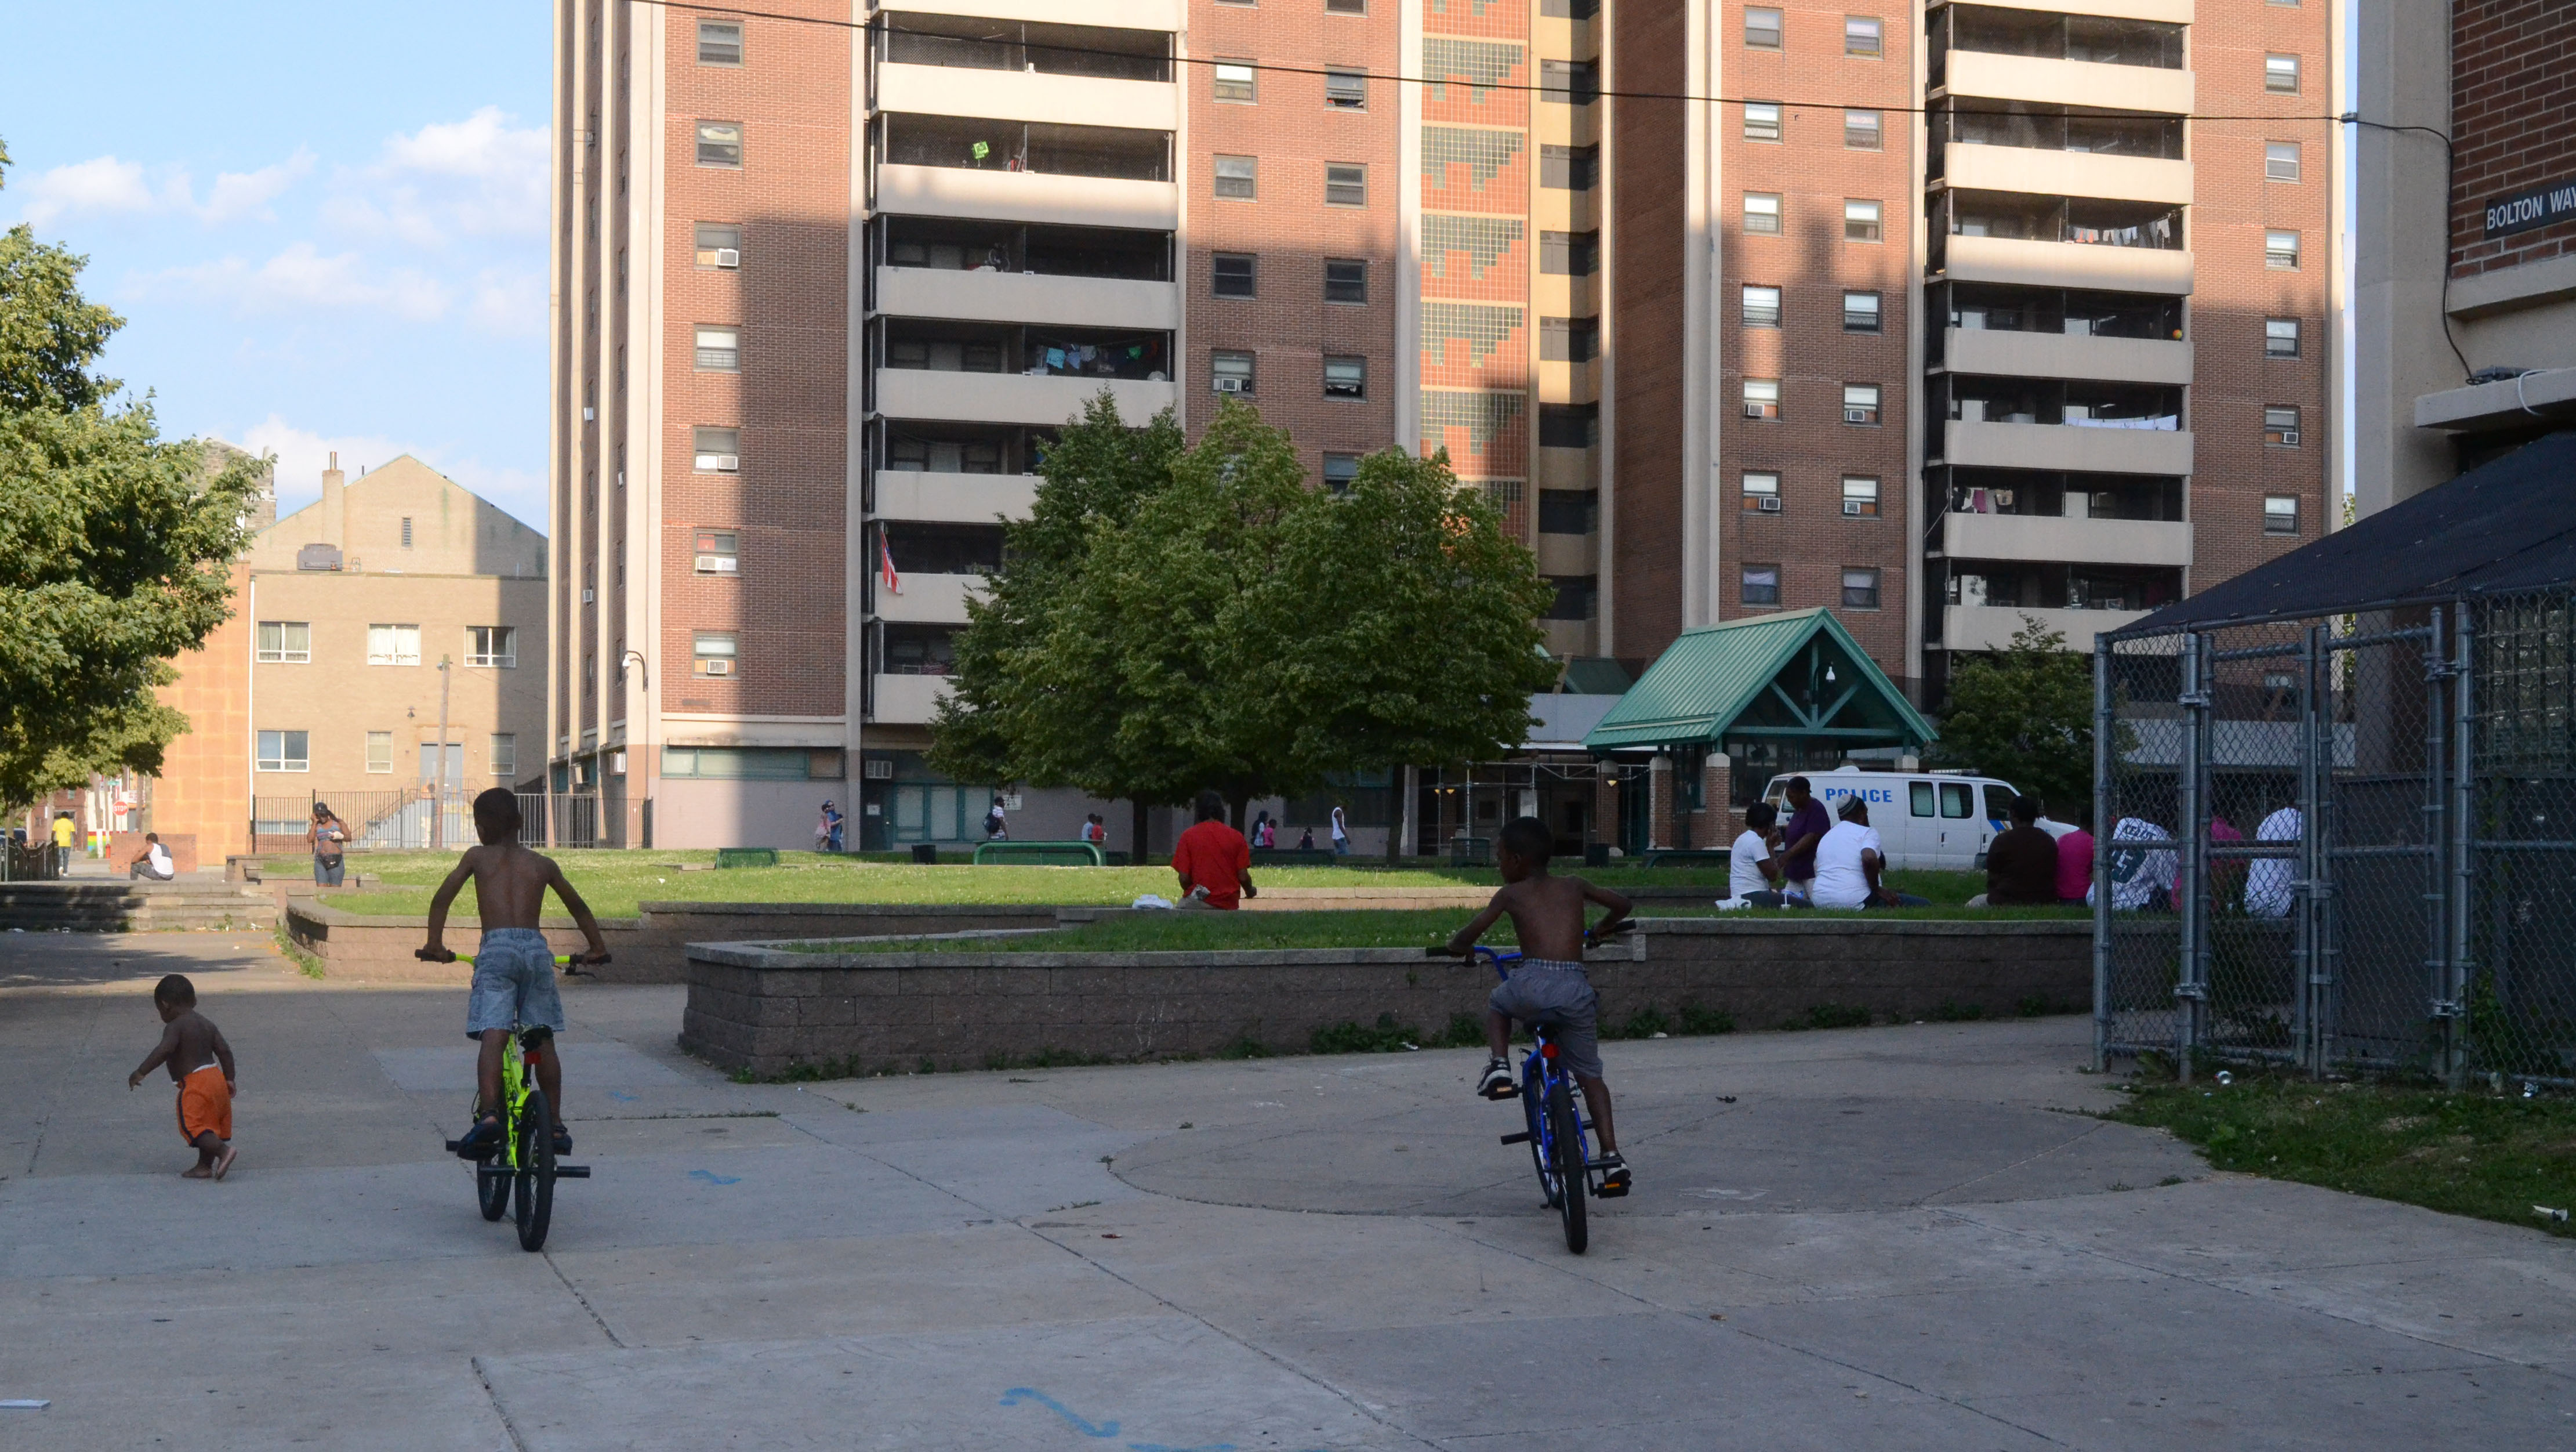 Some kids ride their bikes as the Blumberg towers tower above them. Photo/ Mamaye Mesfin